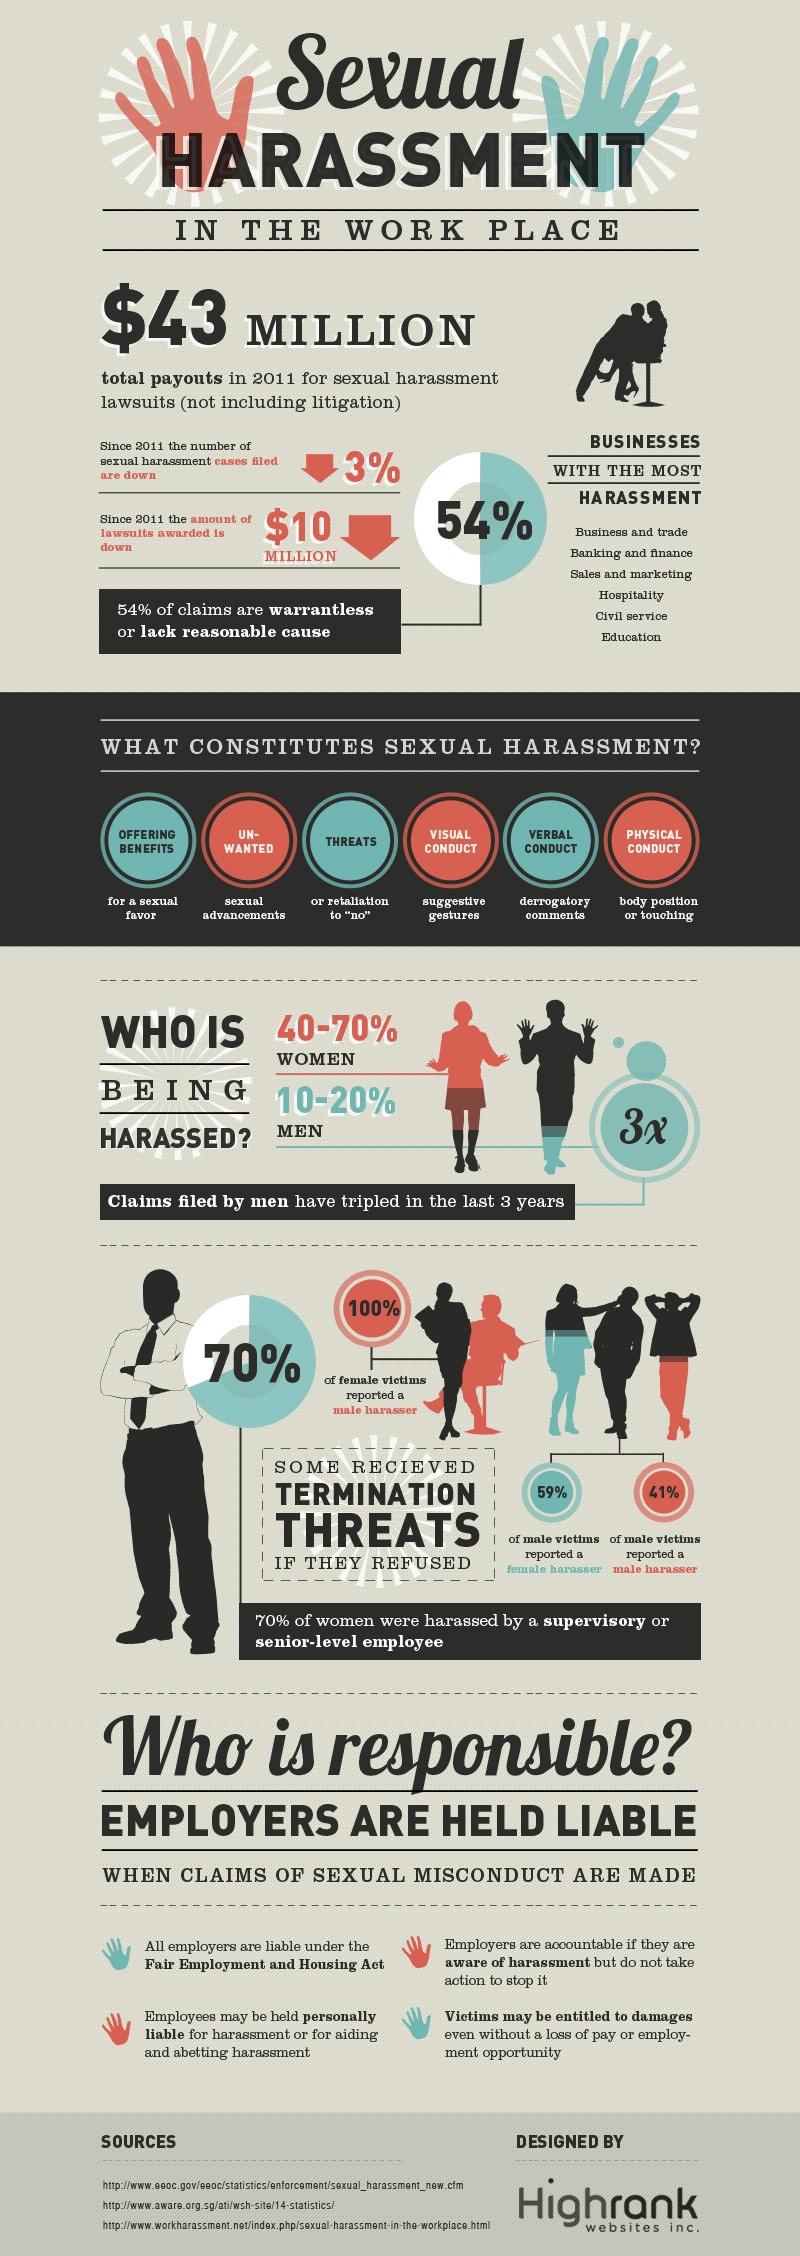 sexual-harassment-and-california-employers-infographic